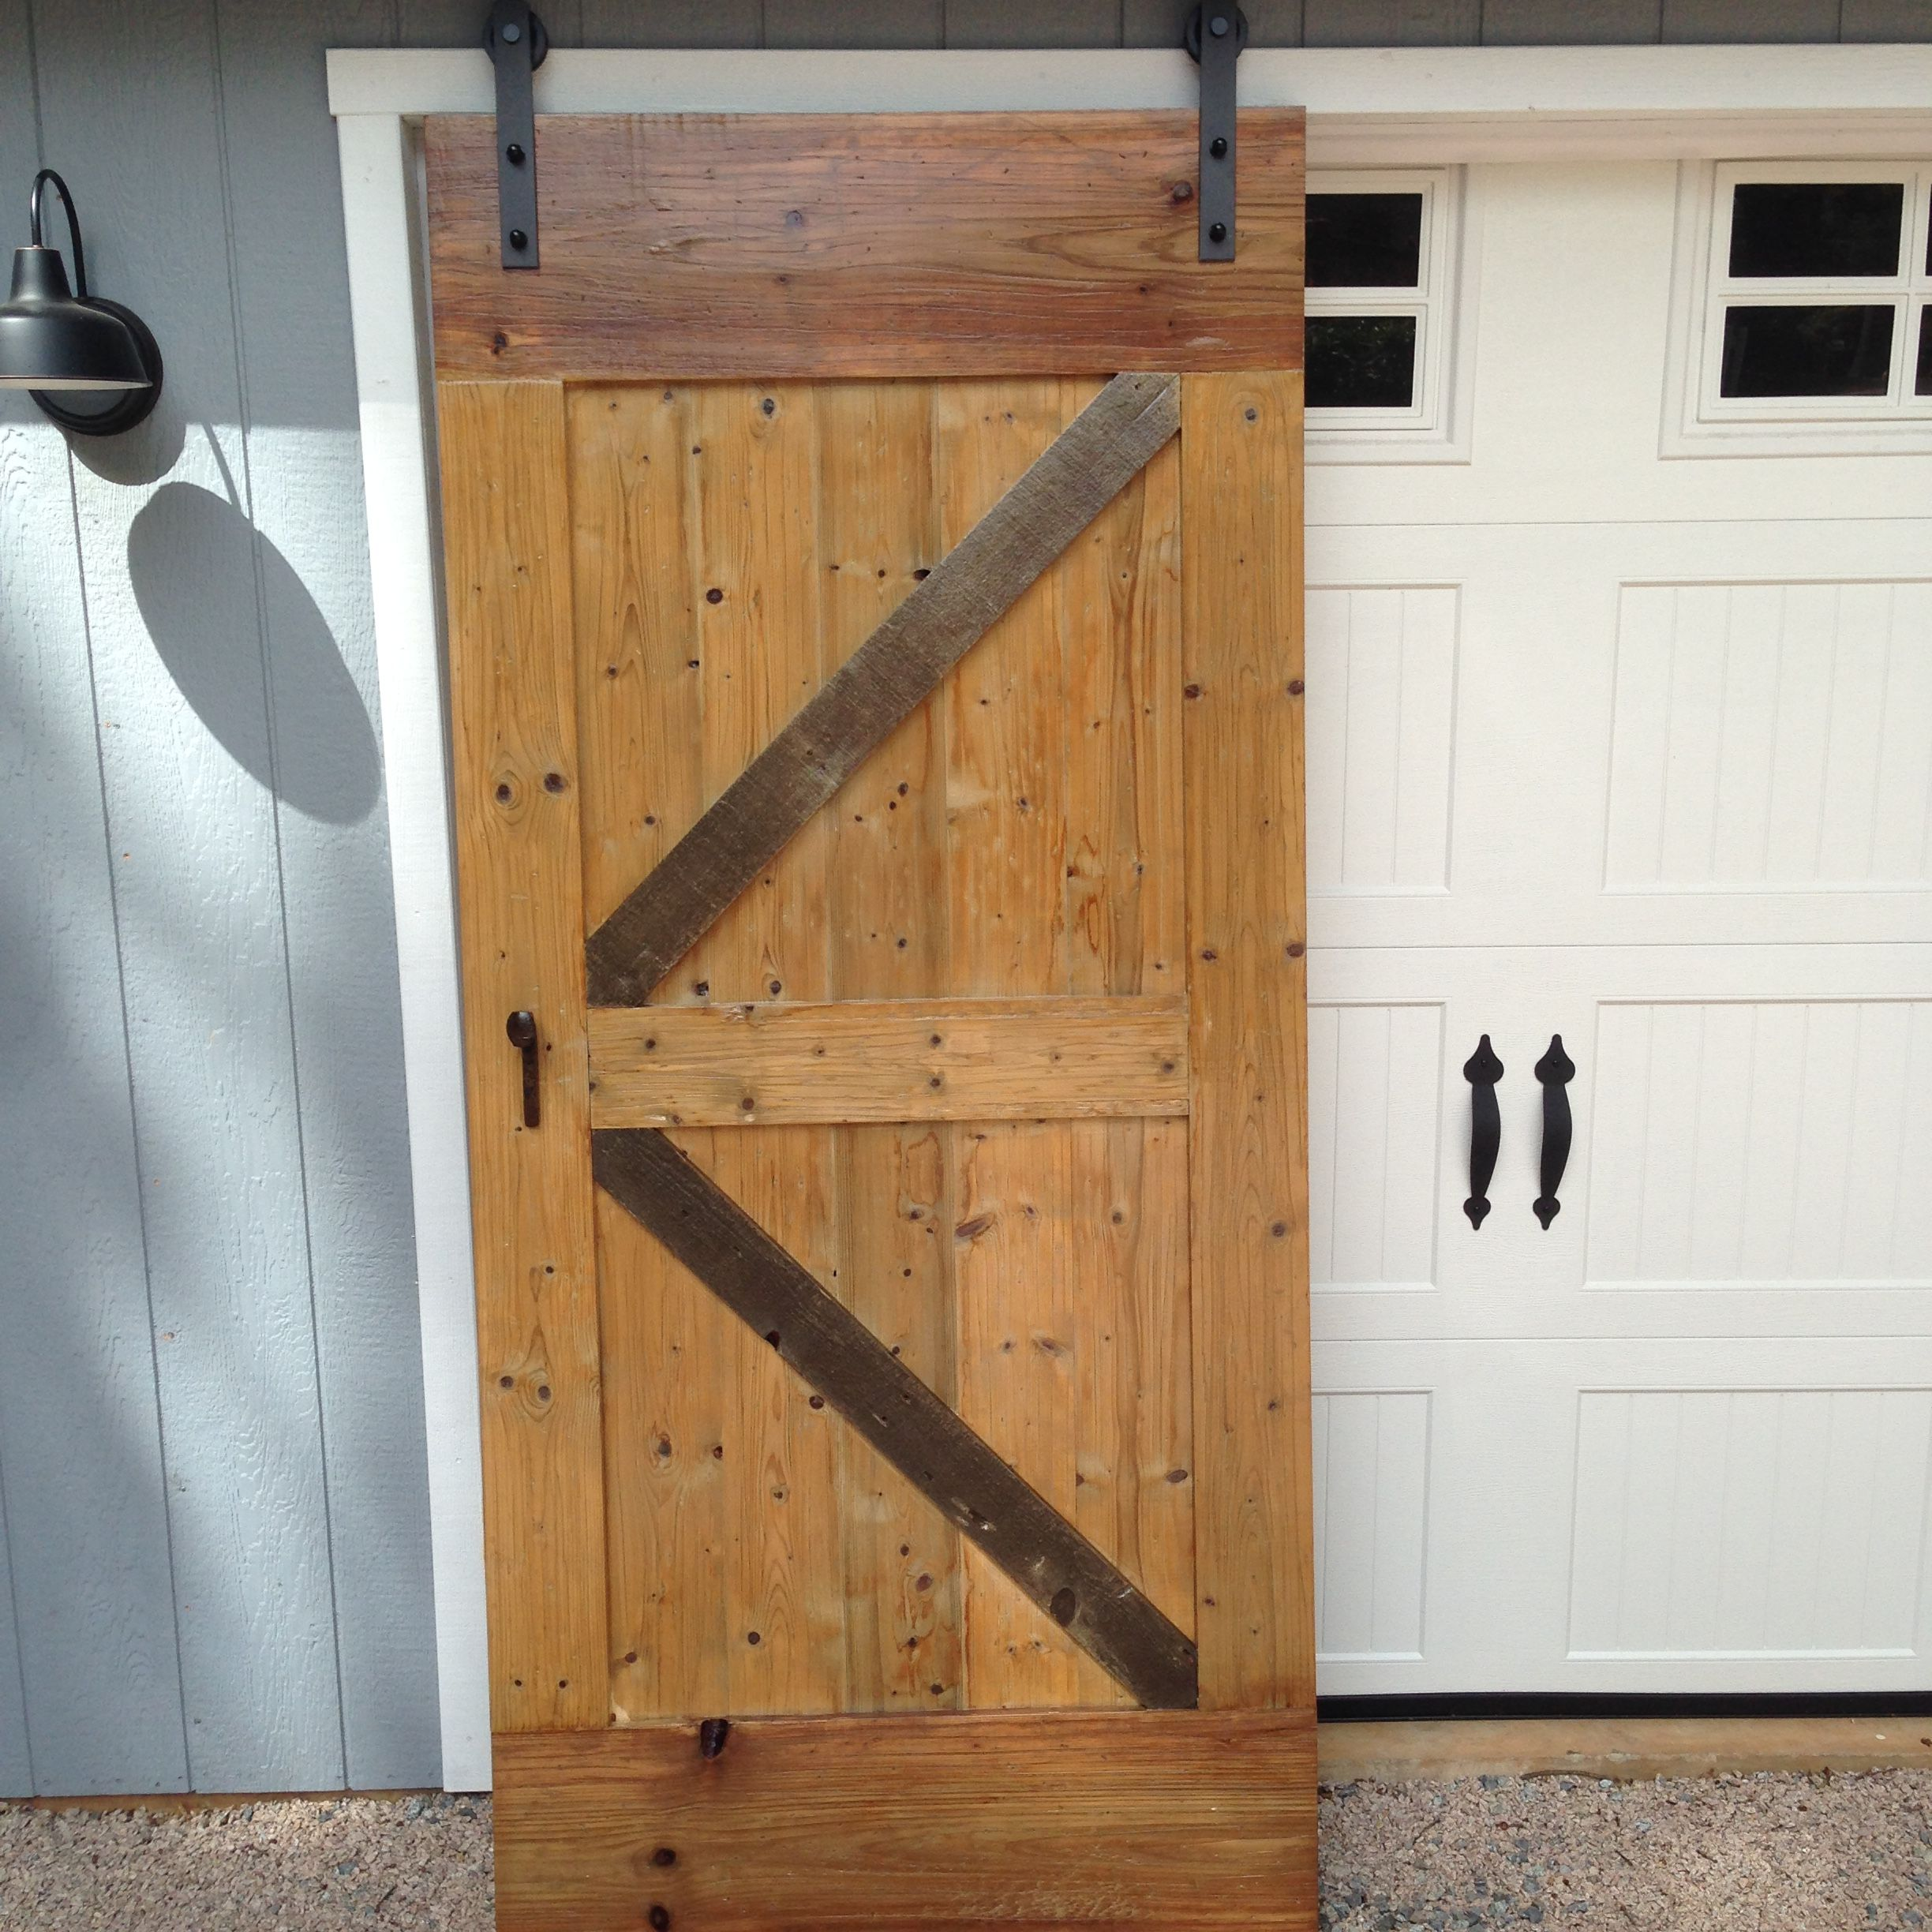 Southern Yellow Pine Door Distressed And Treated With Iron Oxide By Born In A Barn Cornelius Pine Doors Tall Cabinet Storage Barn Door